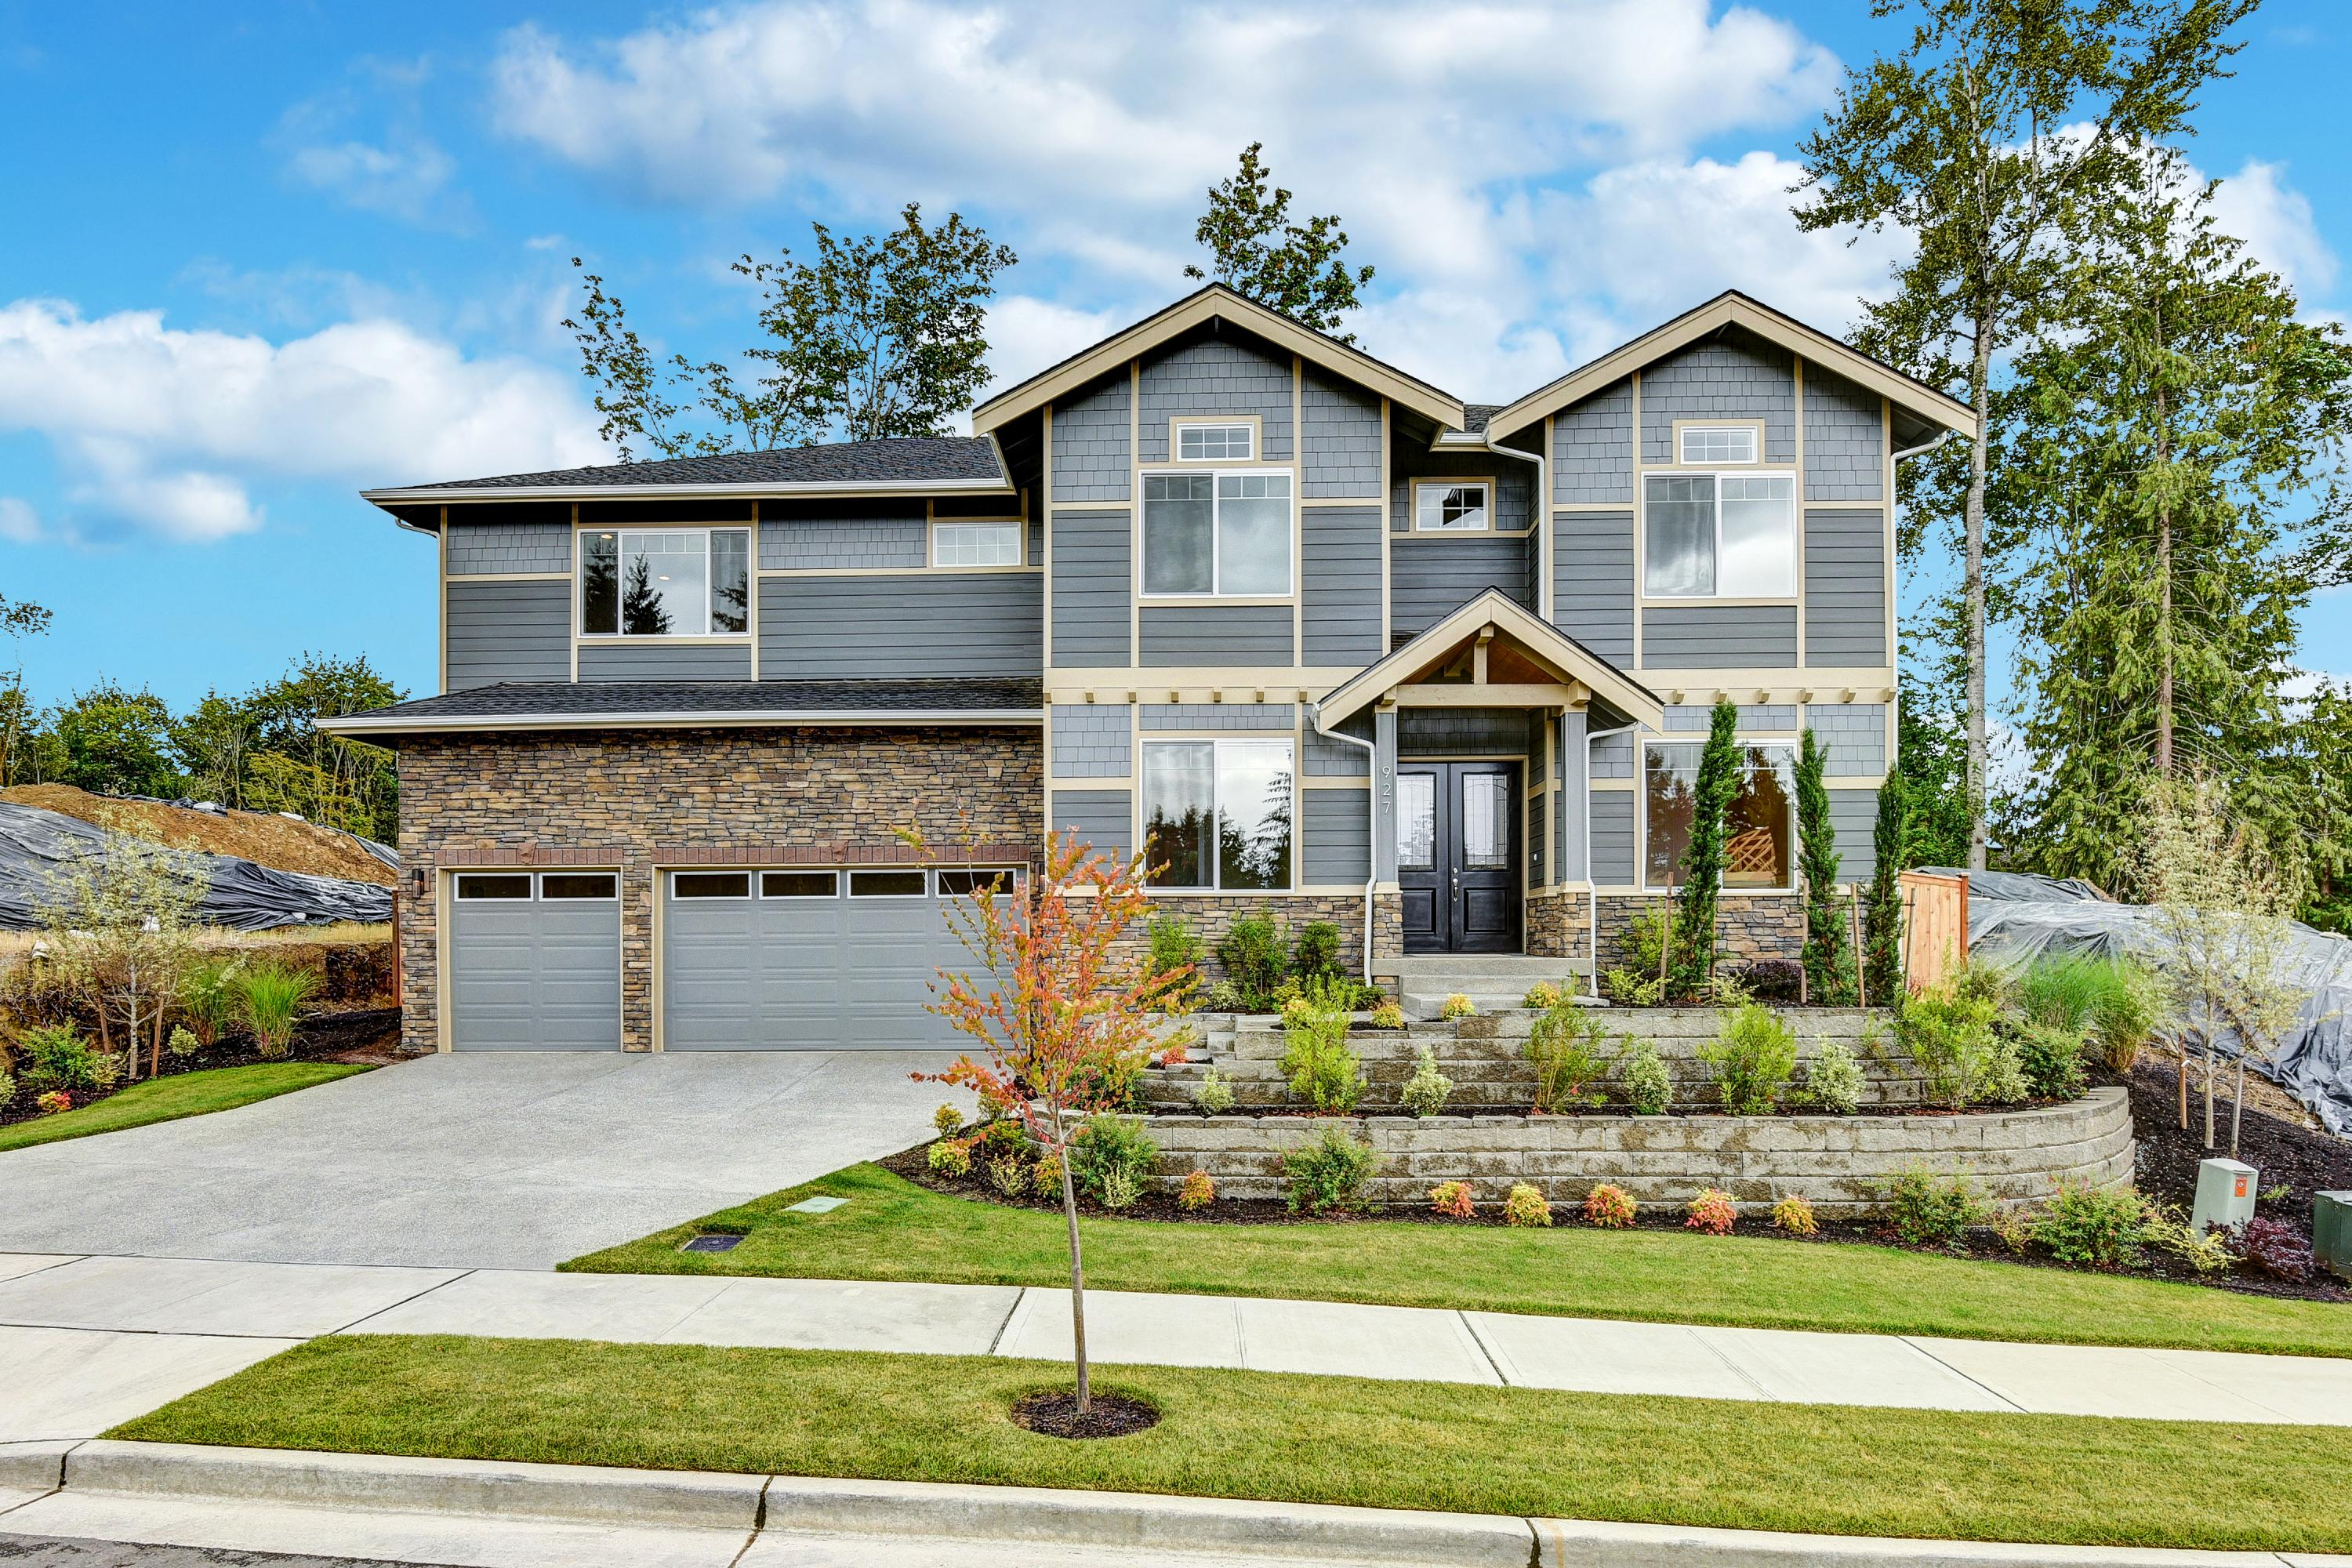 Peachy New Homes In Washington State How To Buy In A Hot Real Home Interior And Landscaping Pimpapssignezvosmurscom